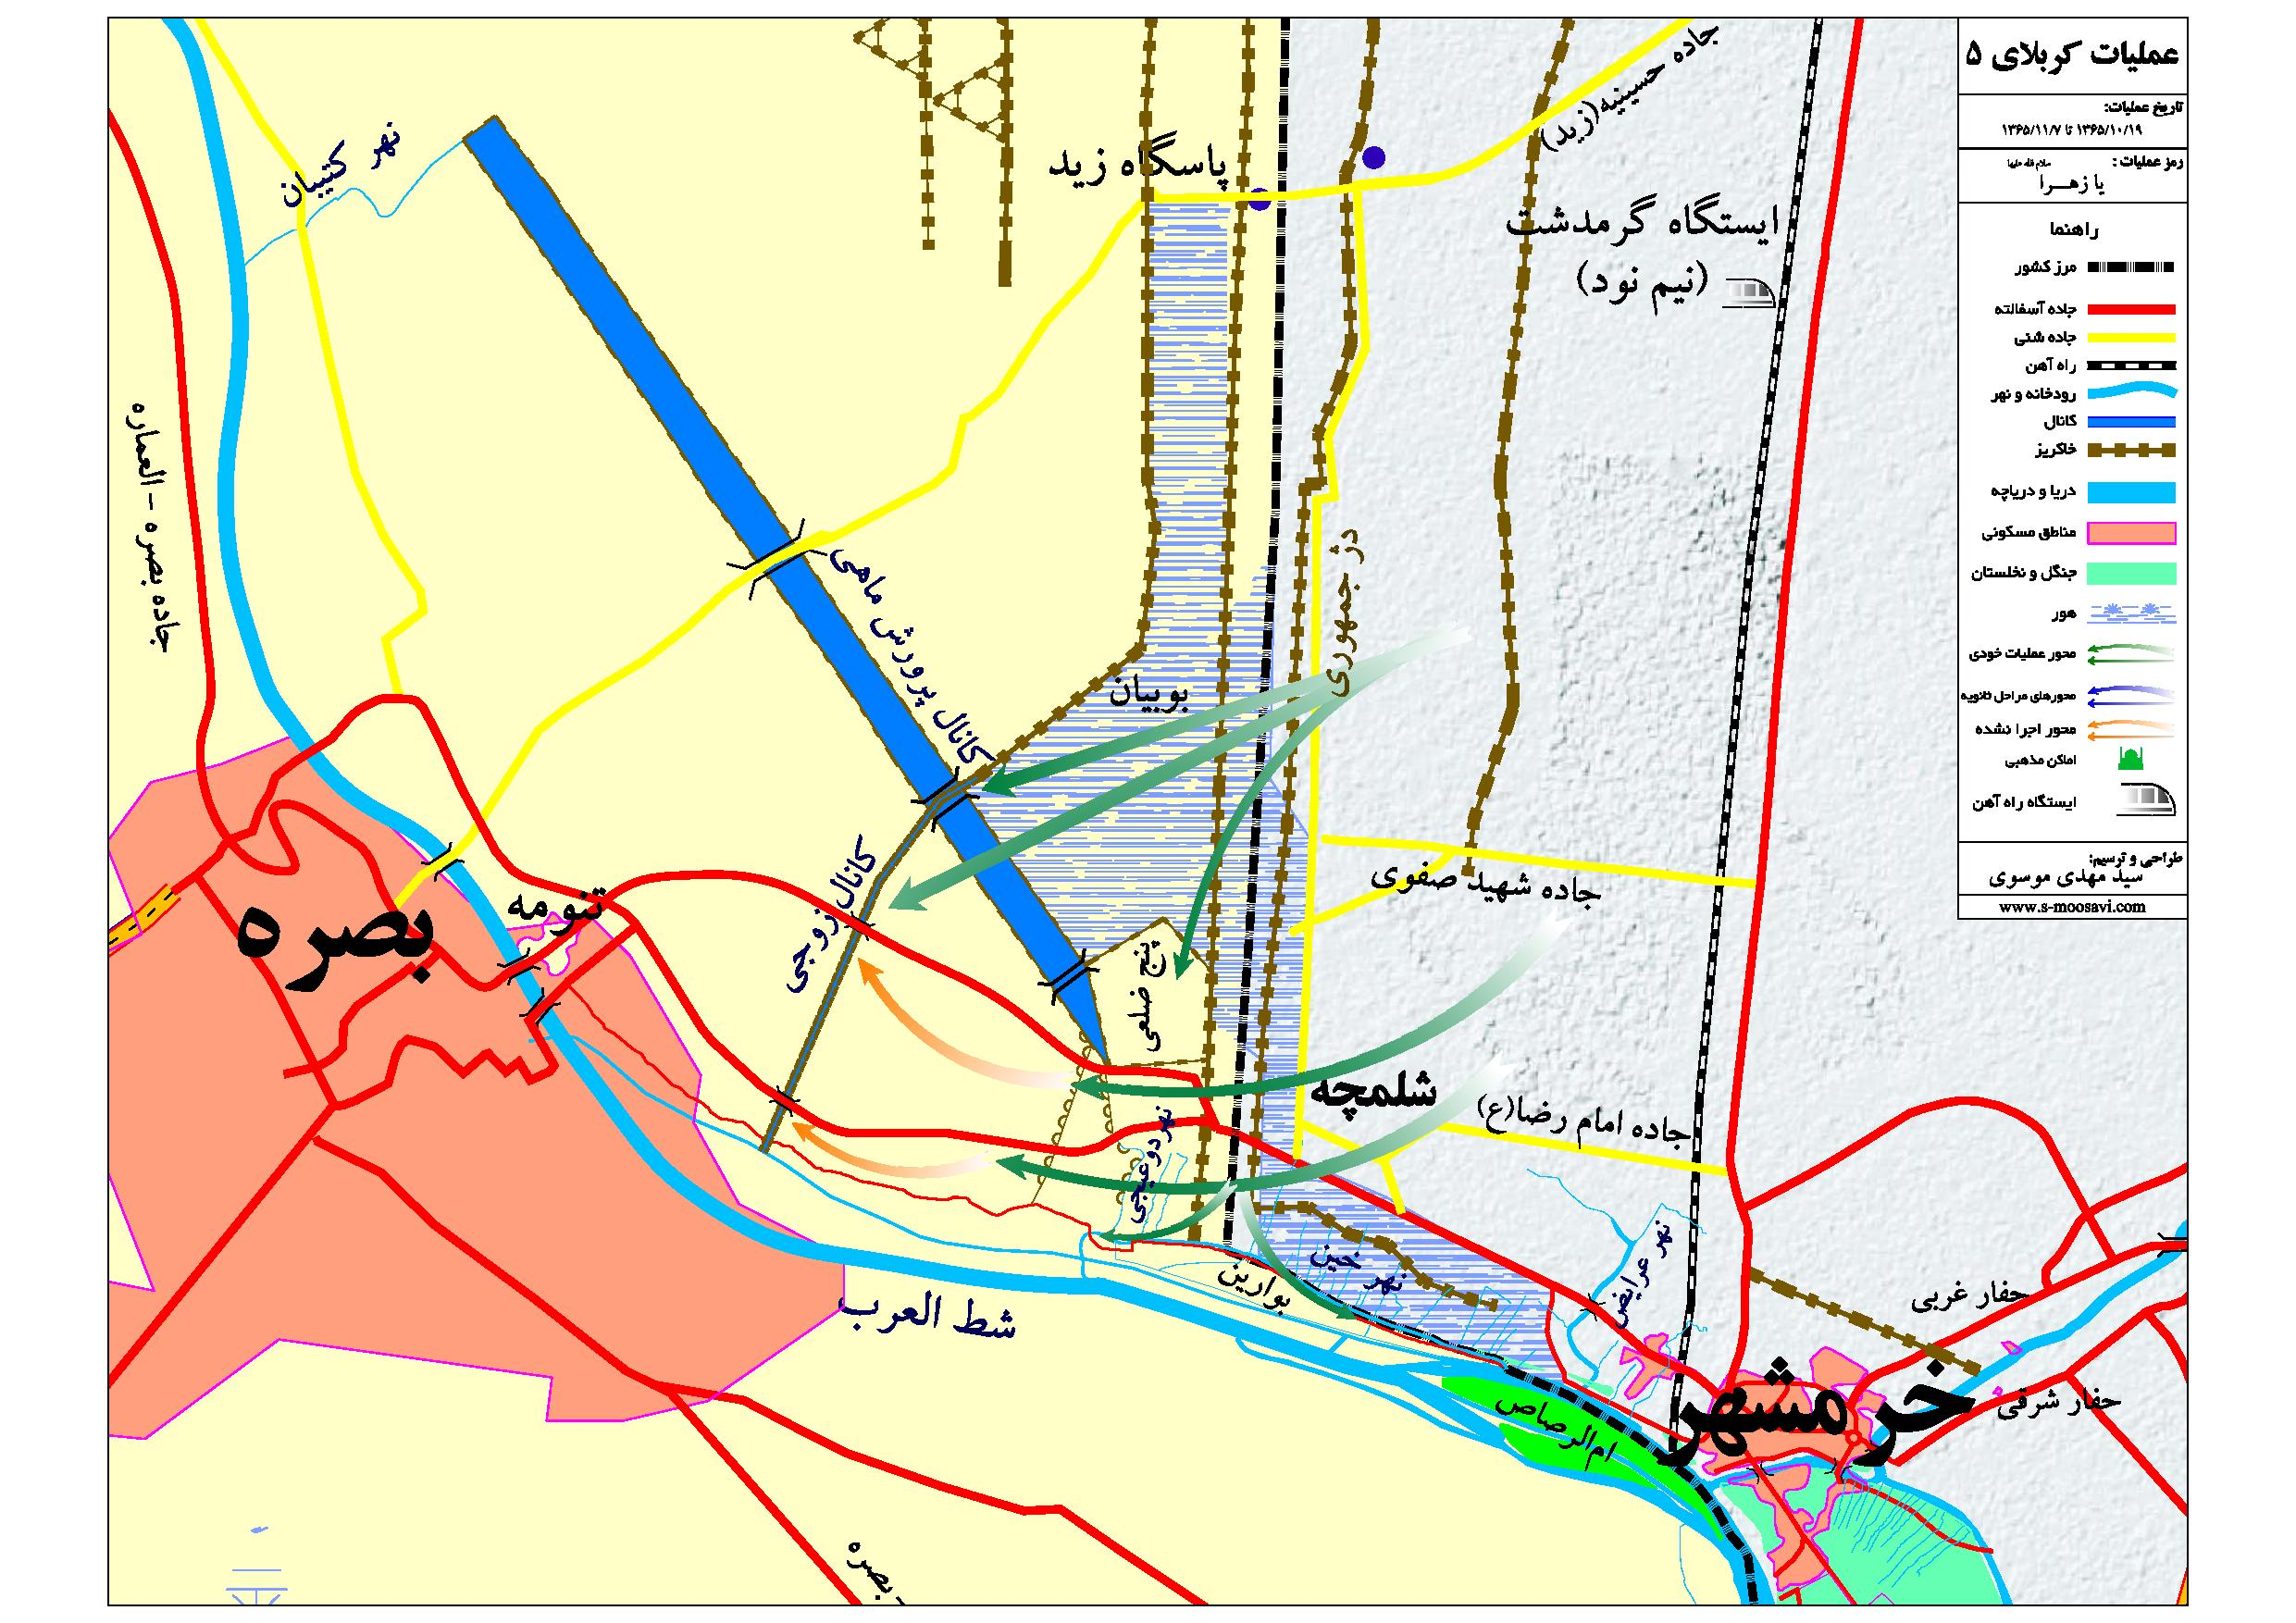 File:Operation Karbala-5, Map.jpg - Wikimedia Commons on medina map, kufa map, dhahran map, al basrah map, bahrain map, tehran map, riyadh map, kirkuk map, karamay map, baghdad map, najaf map, basra map, kurdish language map, jalawla map, jerusalem map, constantinople map, iraq map, palestine map, abu bakr map, muscat map,